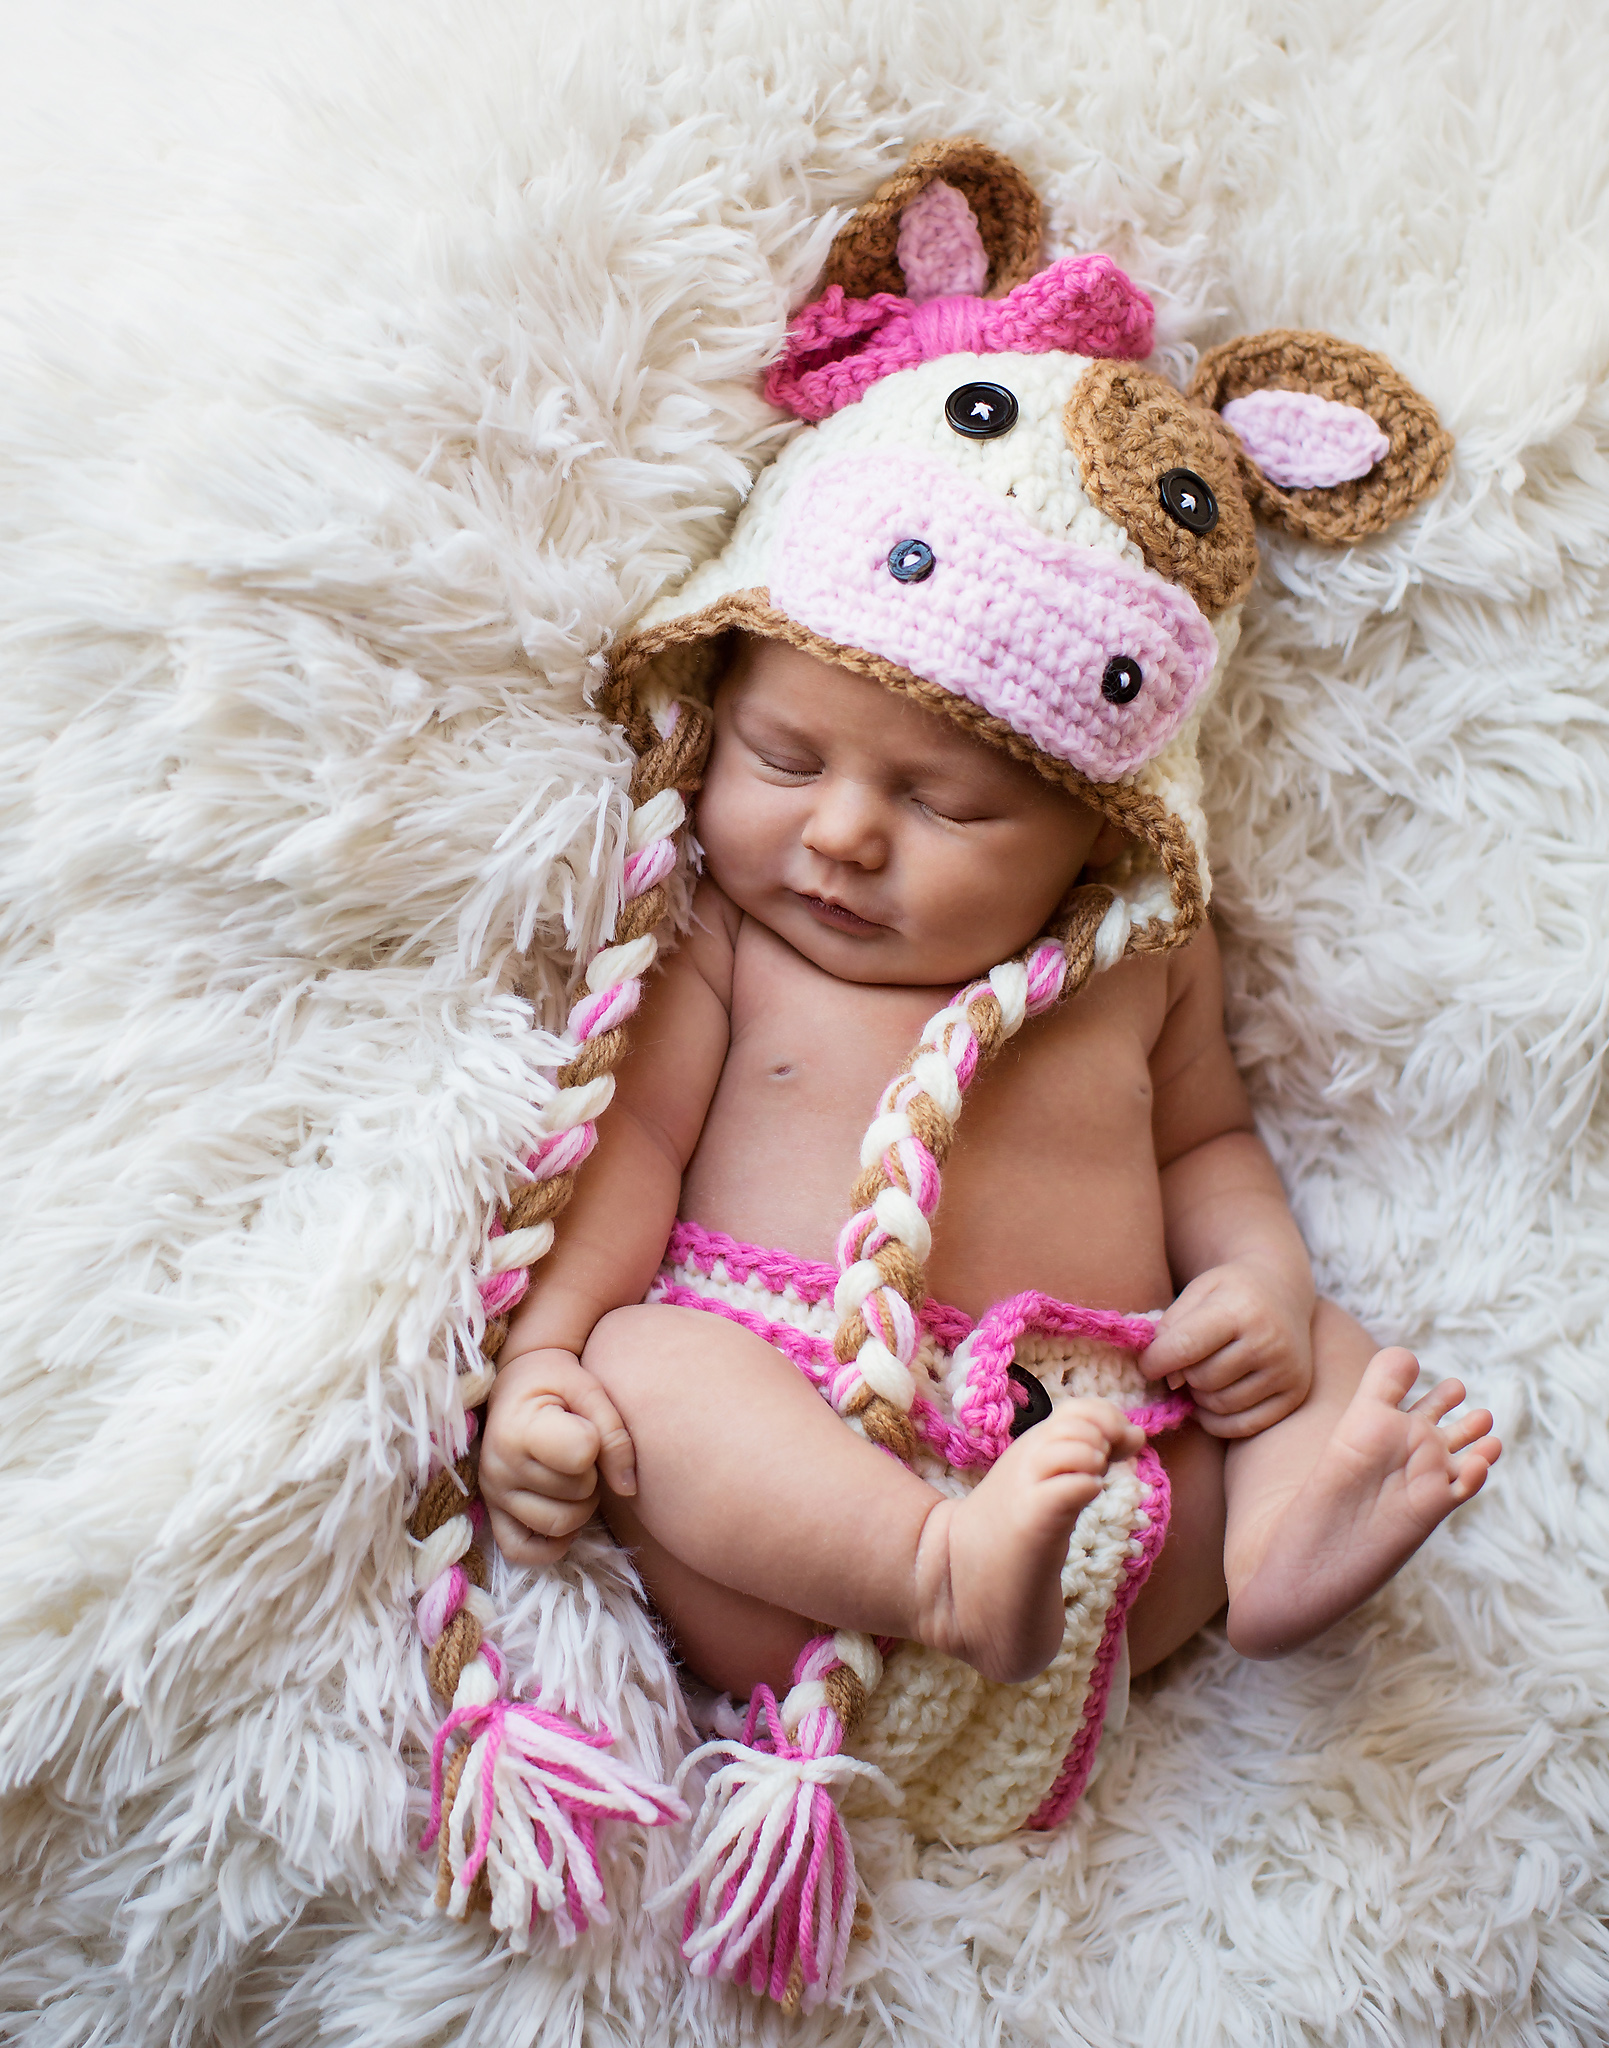 el-paso-newborn-photographer-2.jpg